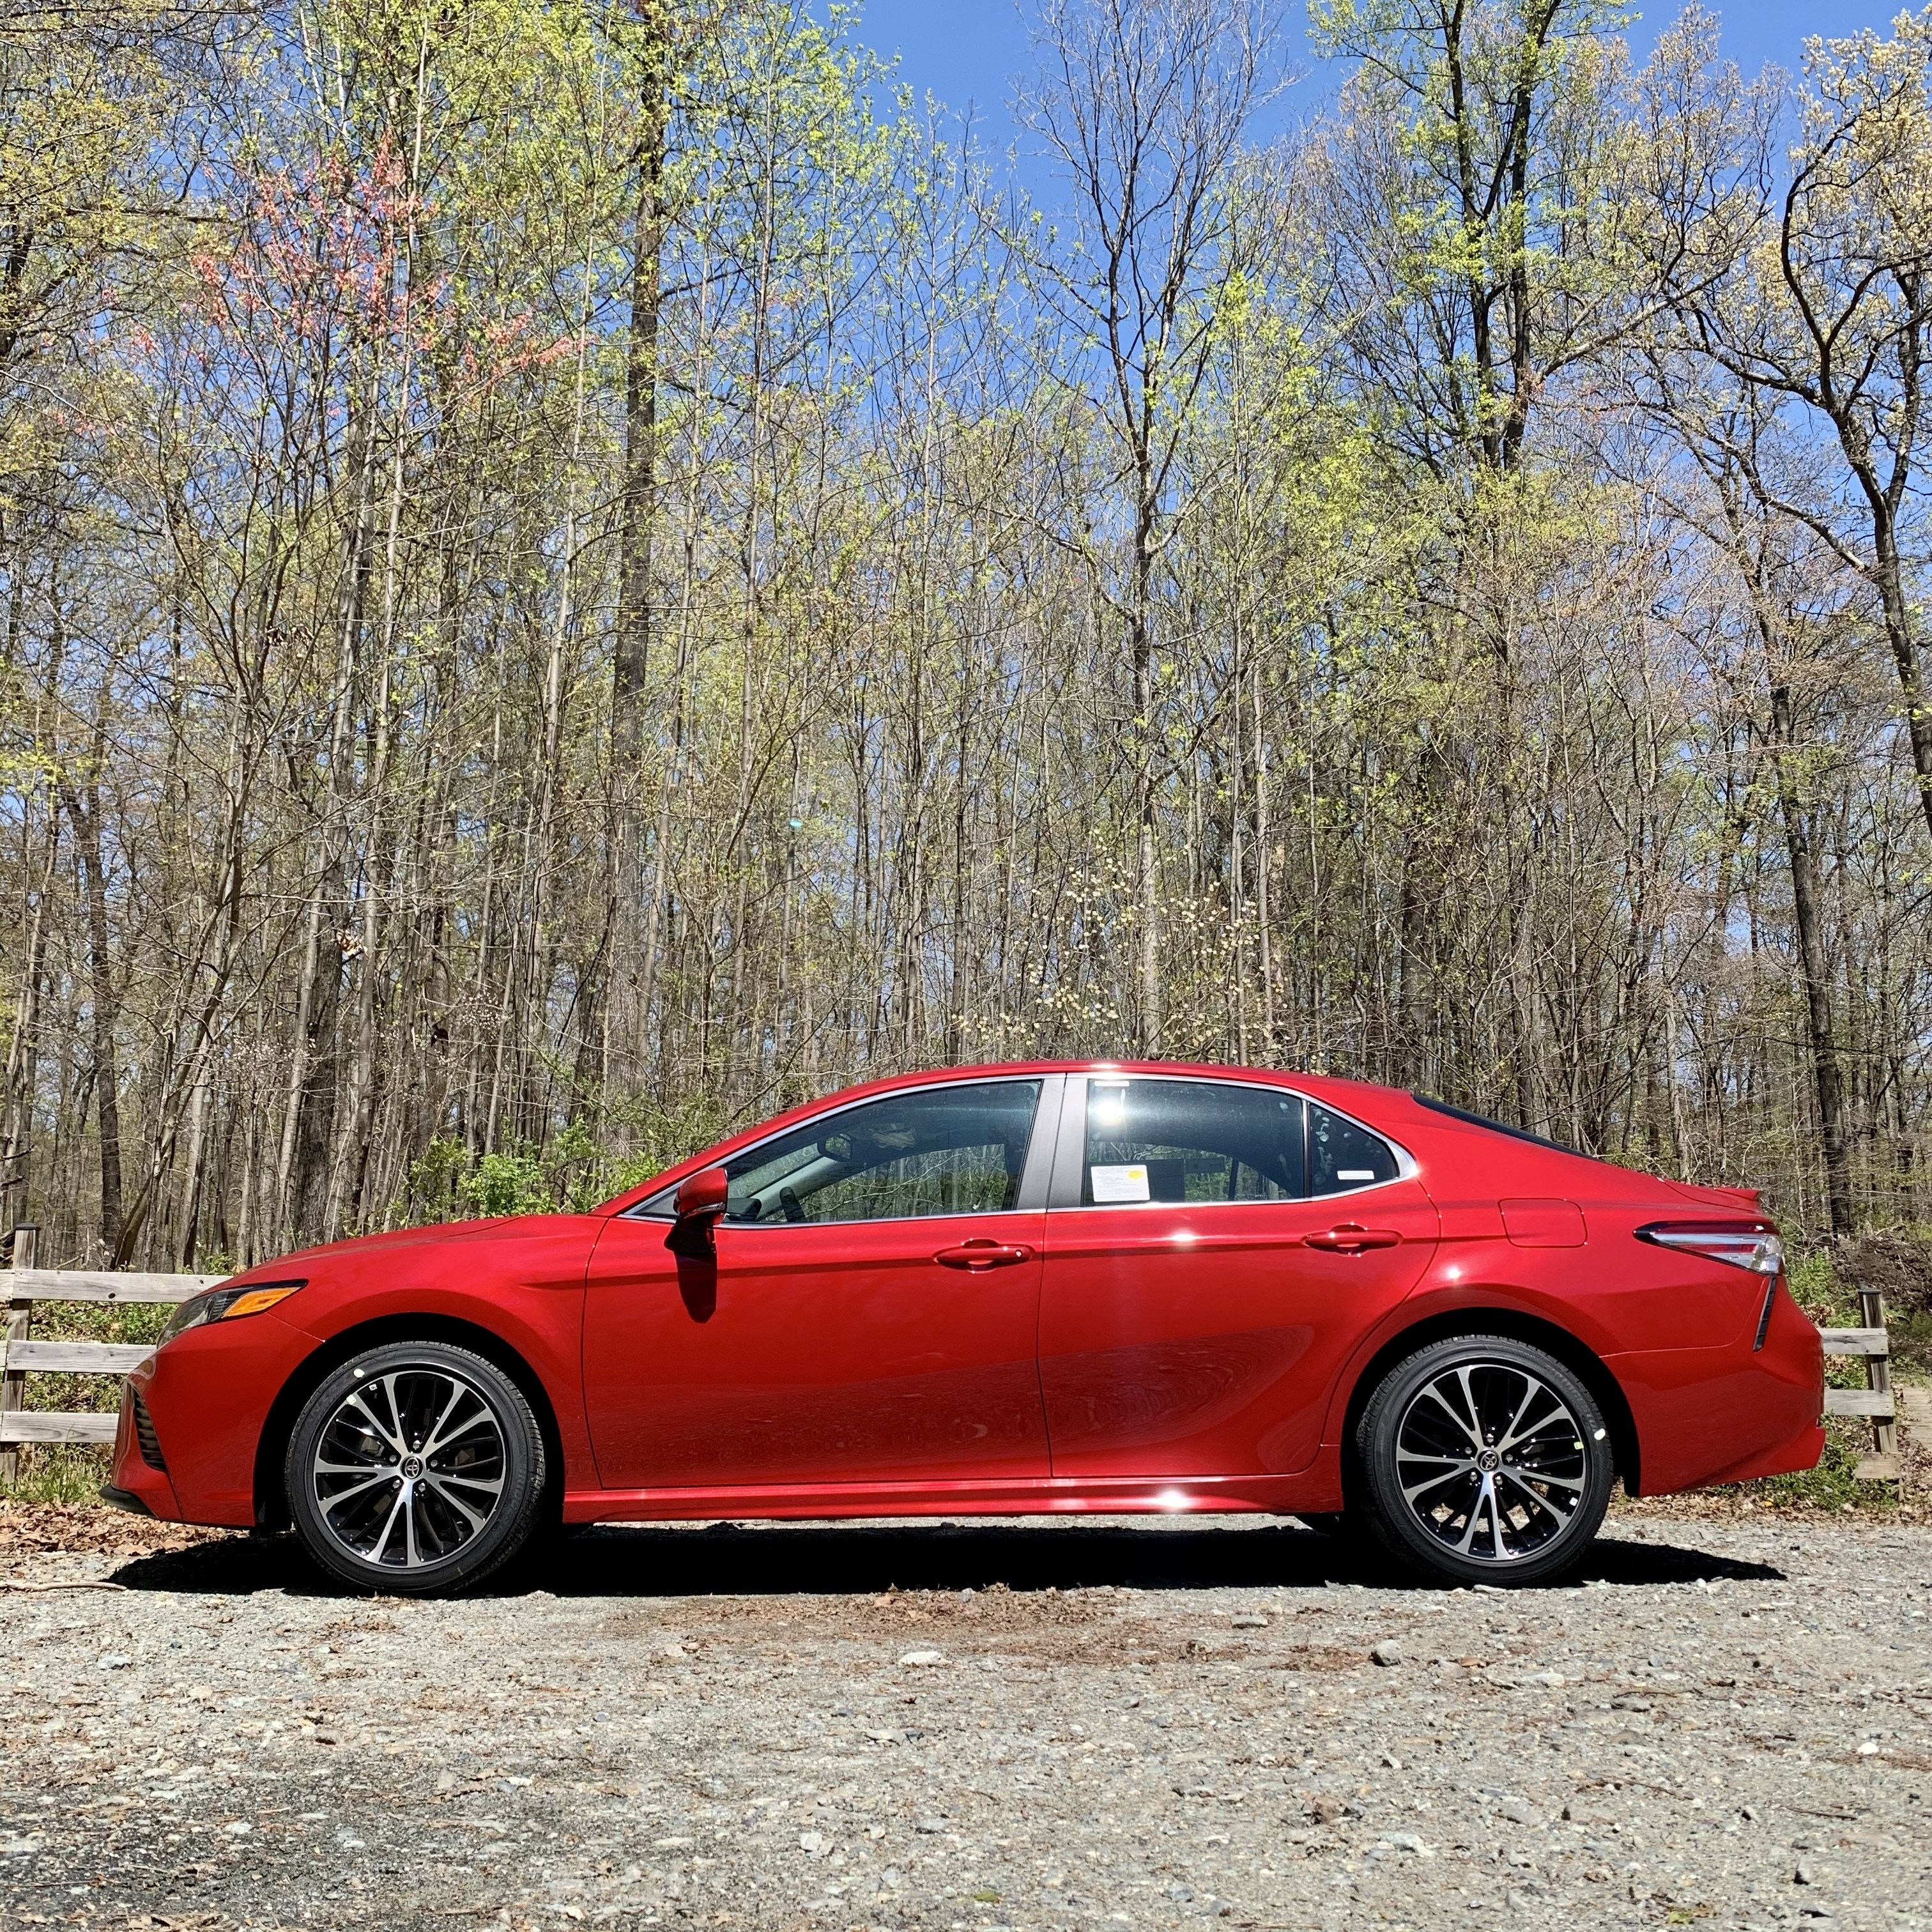 2020 Toyota Camry Toyota Camry Camry Used Car Dealer